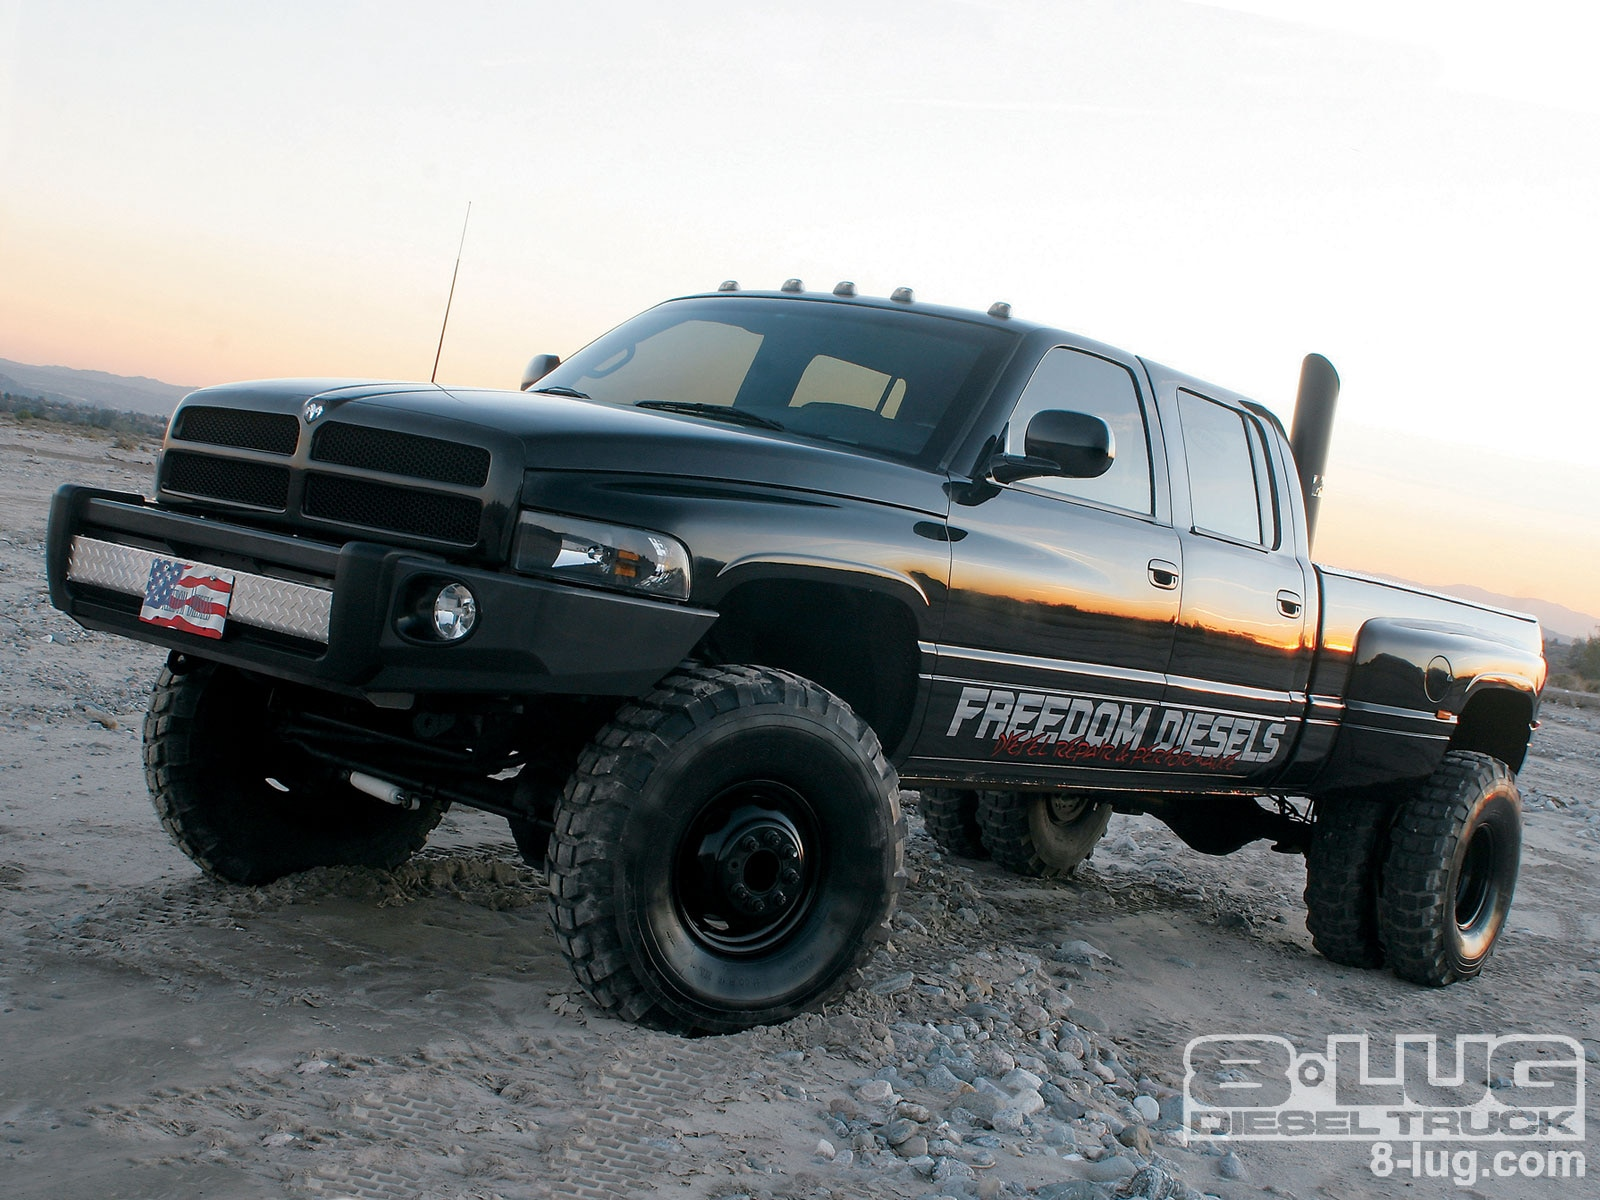 hight resolution of 1998 dodge ram 3500 crew cab front left view